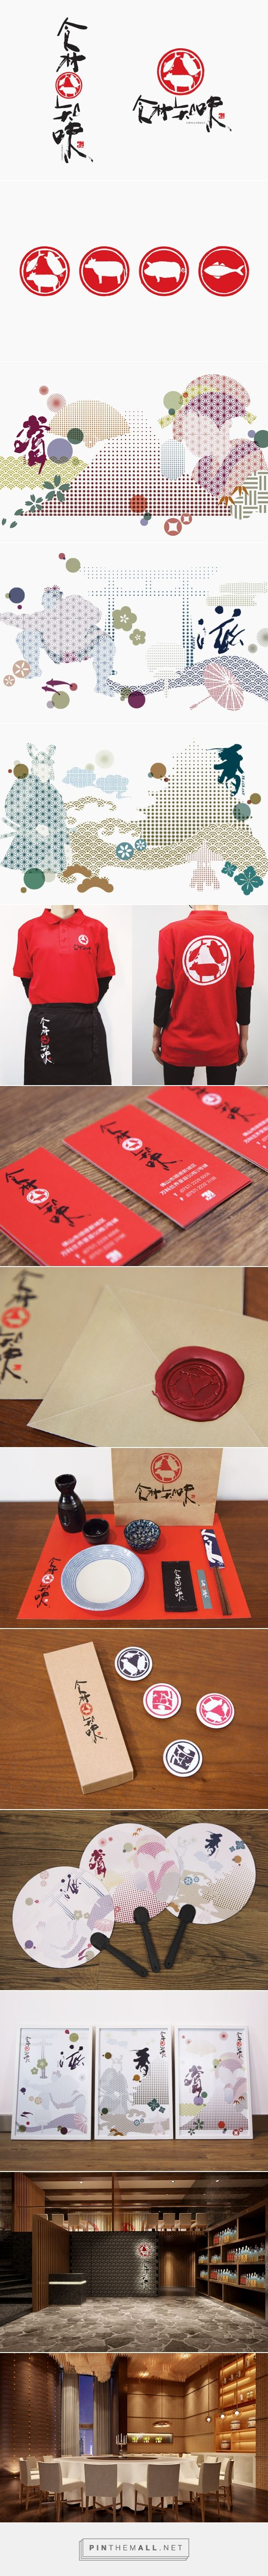 Chillsdeli Japanese BBQ Restaurant packaging branding on Behance by Box Brand Design curated by Packaging Diva PD. Very elegant for barbecue by our standards.